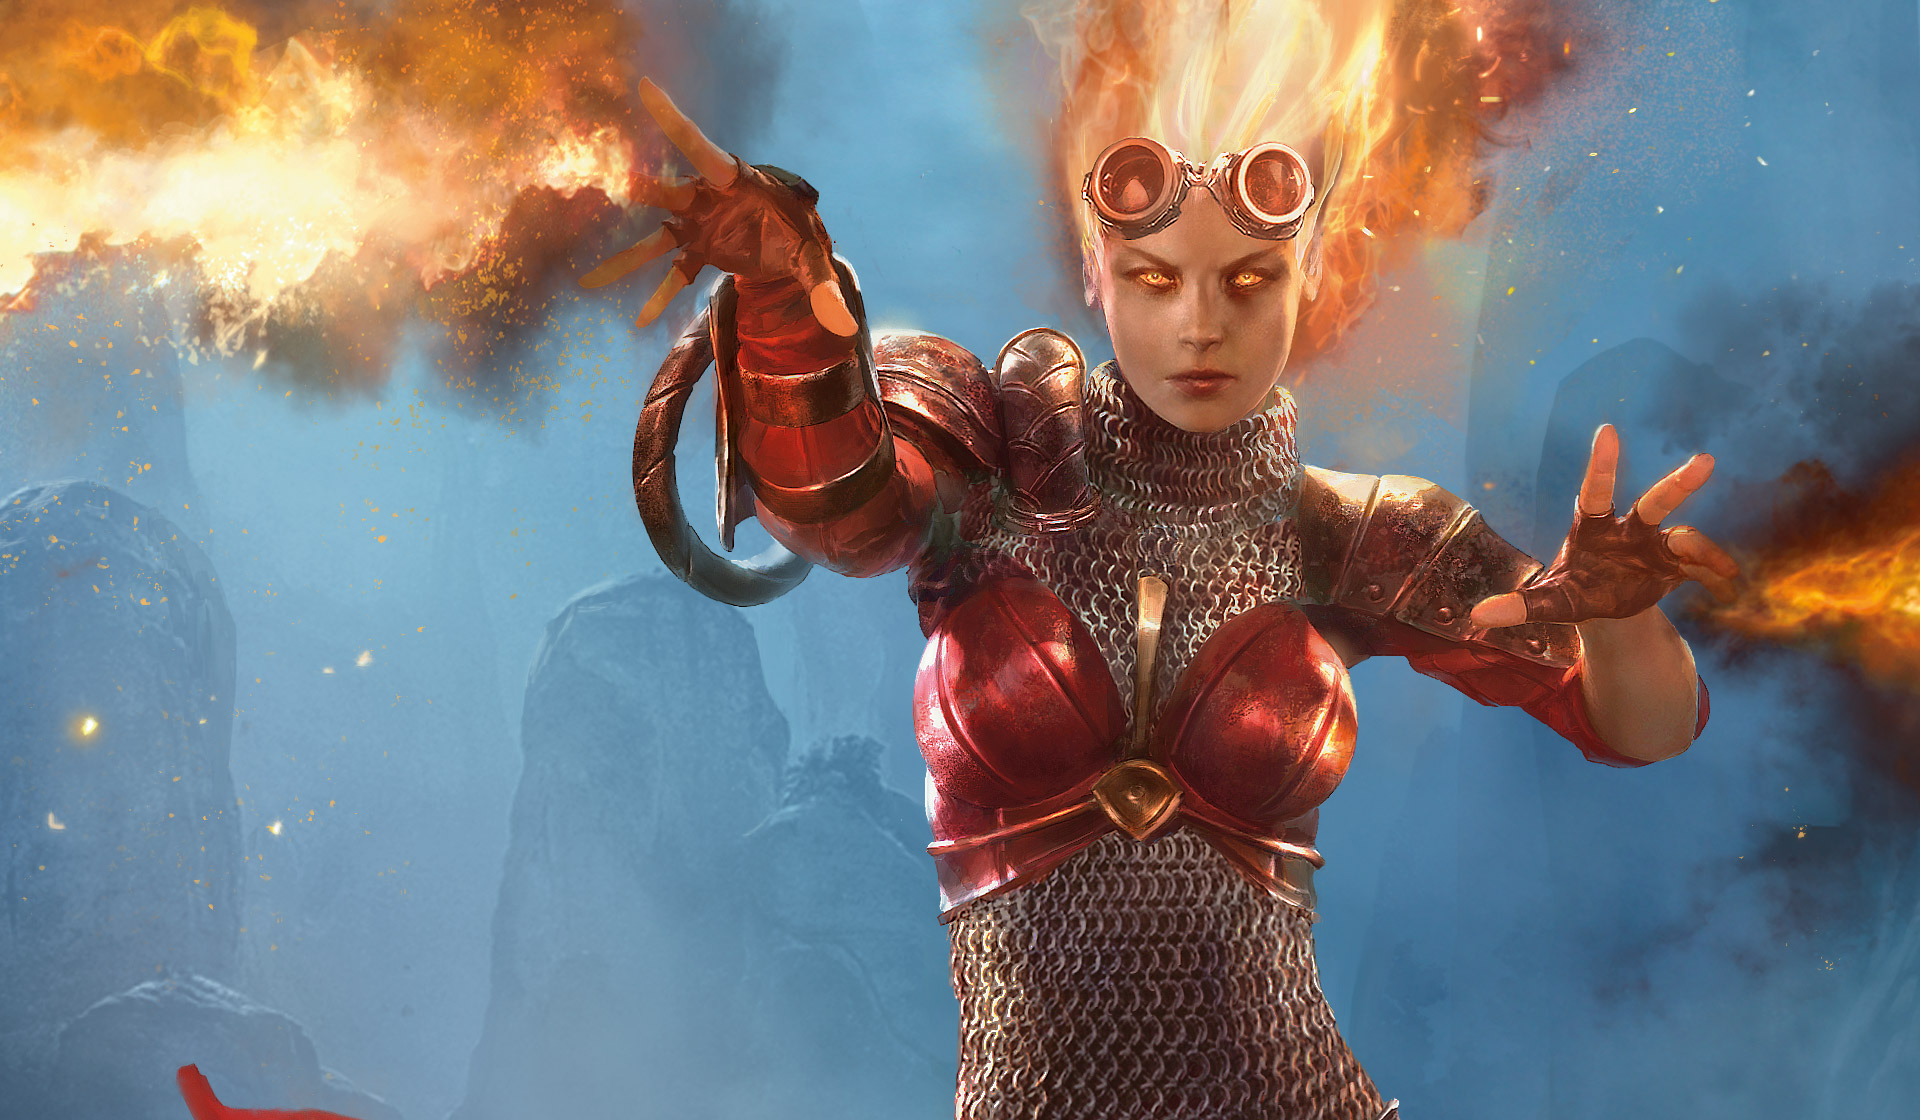 Magic: The Gathering animated series to focus on Chandra, Jace